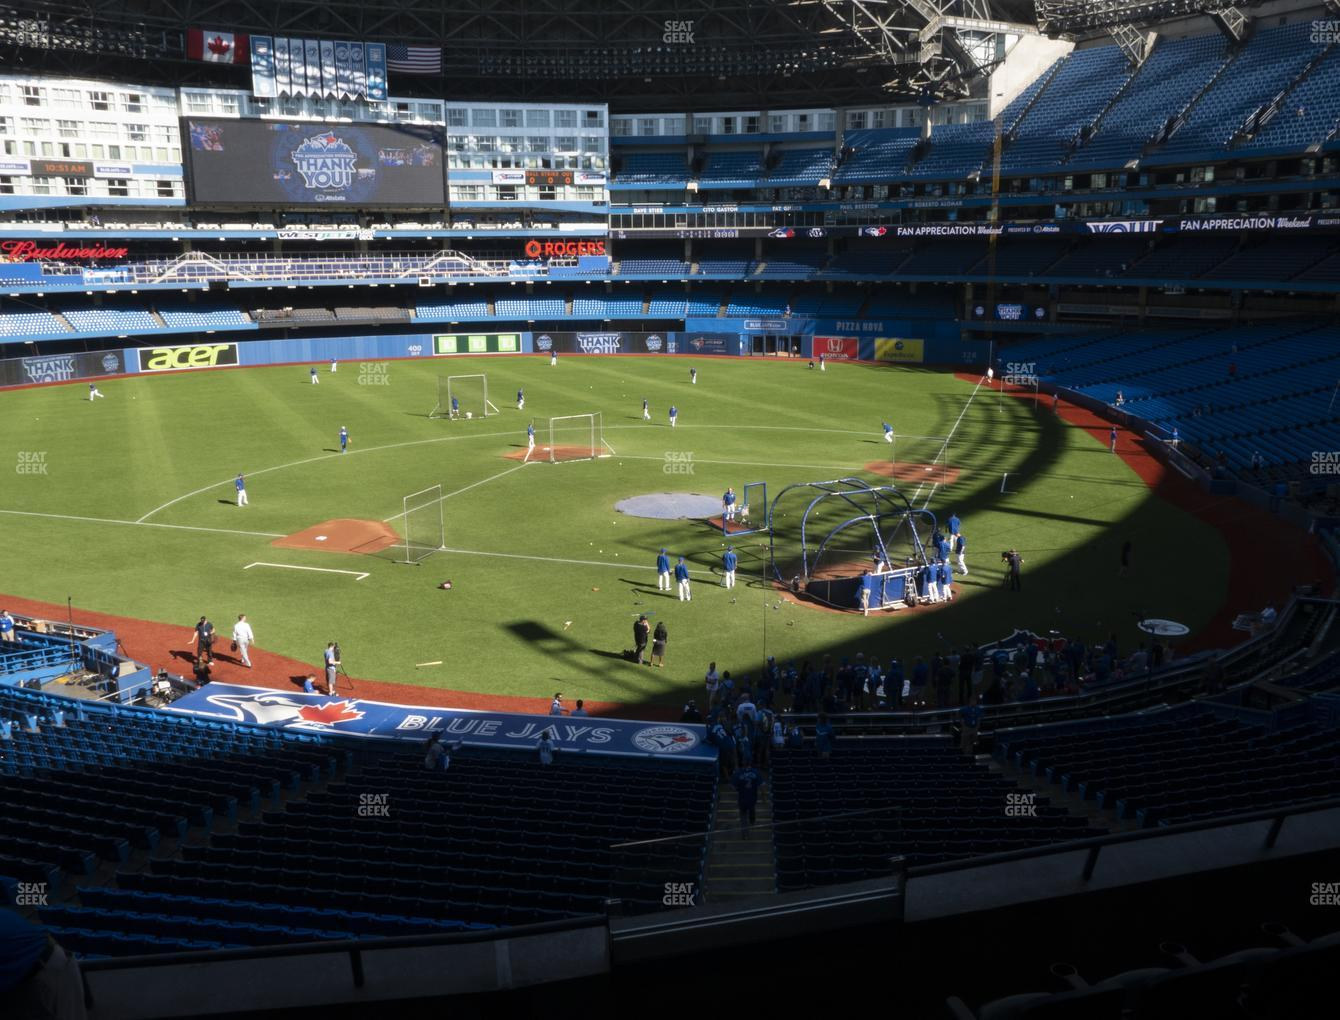 Toronto Blue Jays at Rogers Centre TD Comfort Club 226 R View